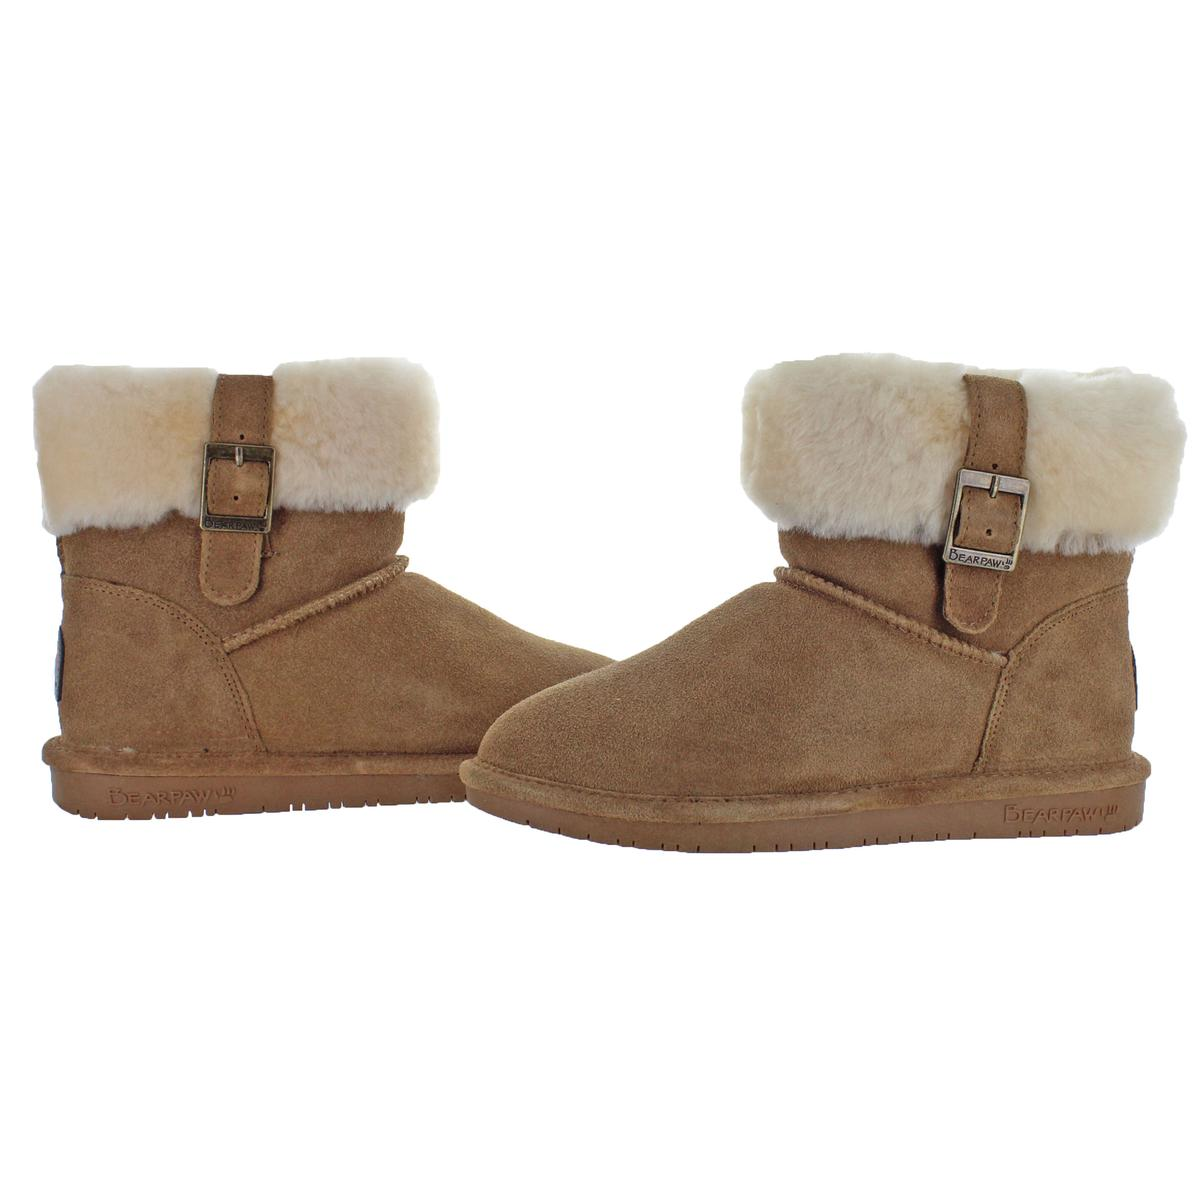 Bearpaw-Abby-Women-039-s-Suede-Foldover-Sheepskin-Lined-Mid-Calf-Boots